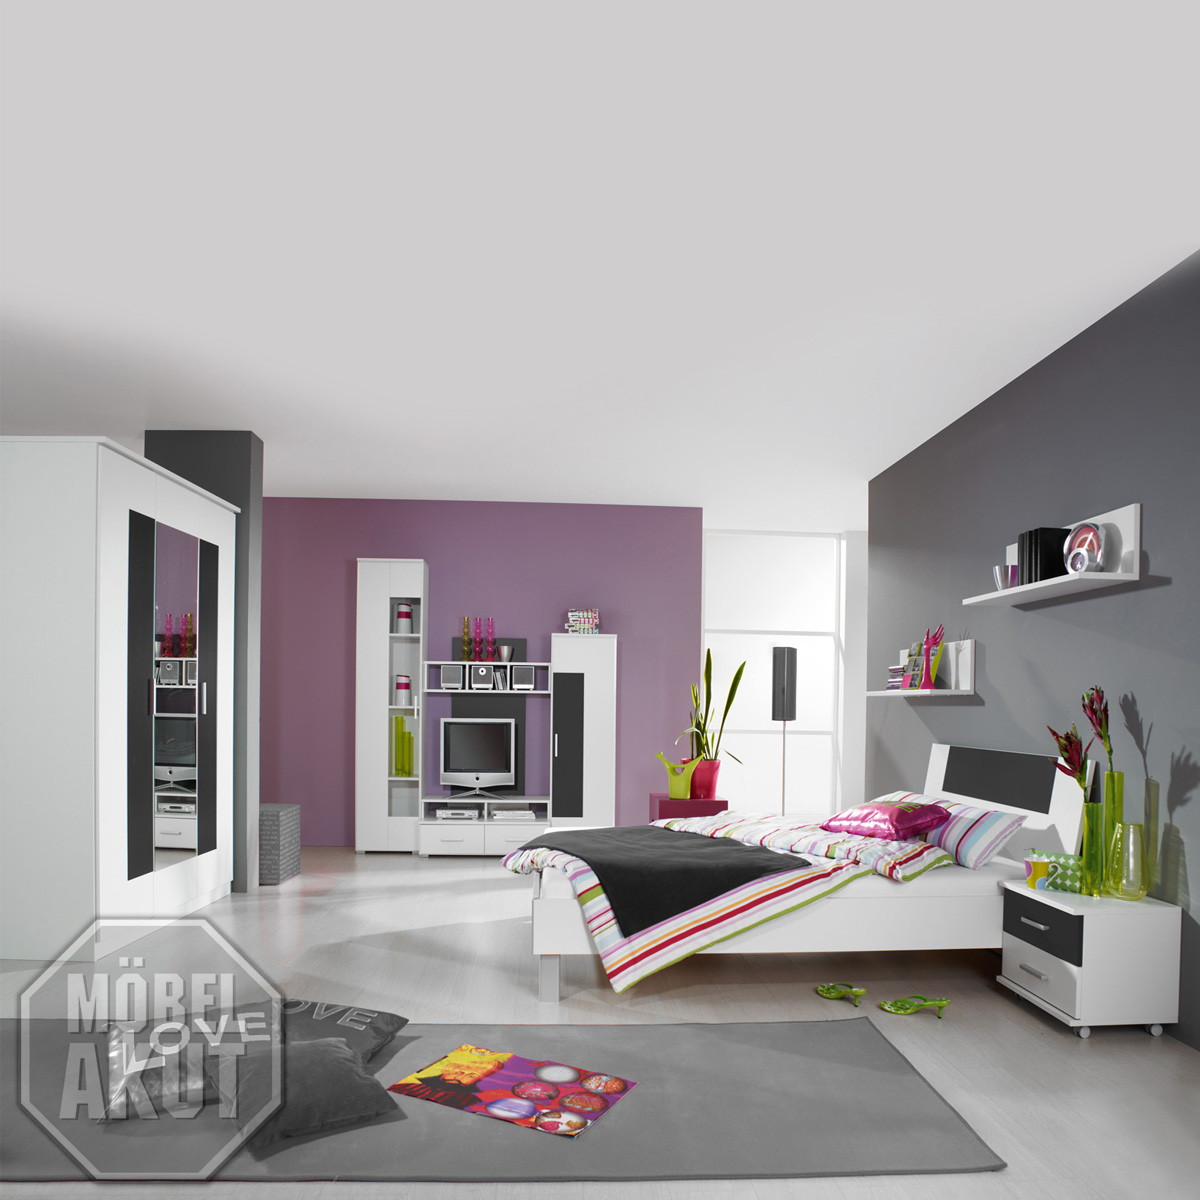 jugendzimmer fortuna kinderzimmer wei grau metallic ebay. Black Bedroom Furniture Sets. Home Design Ideas